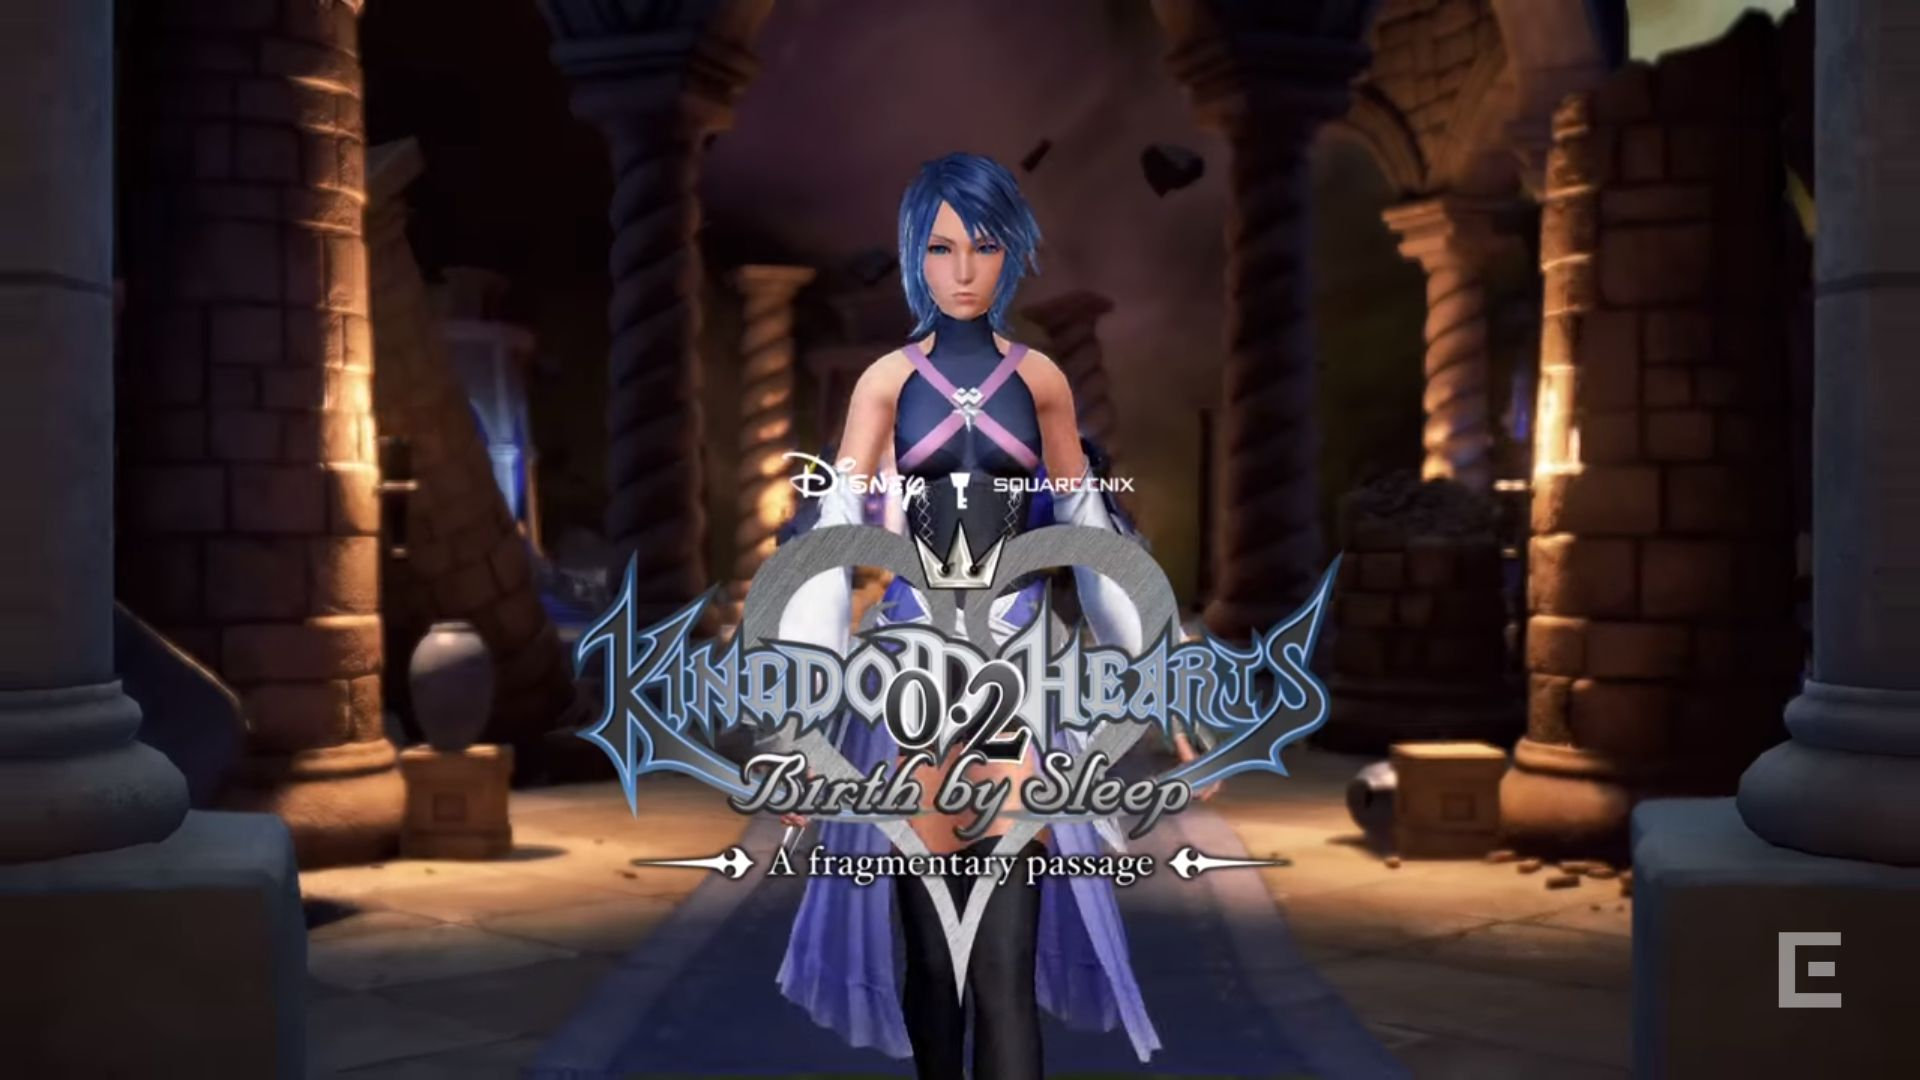 New Kingdom Hearts 2 8 Trailer Released Player Theory